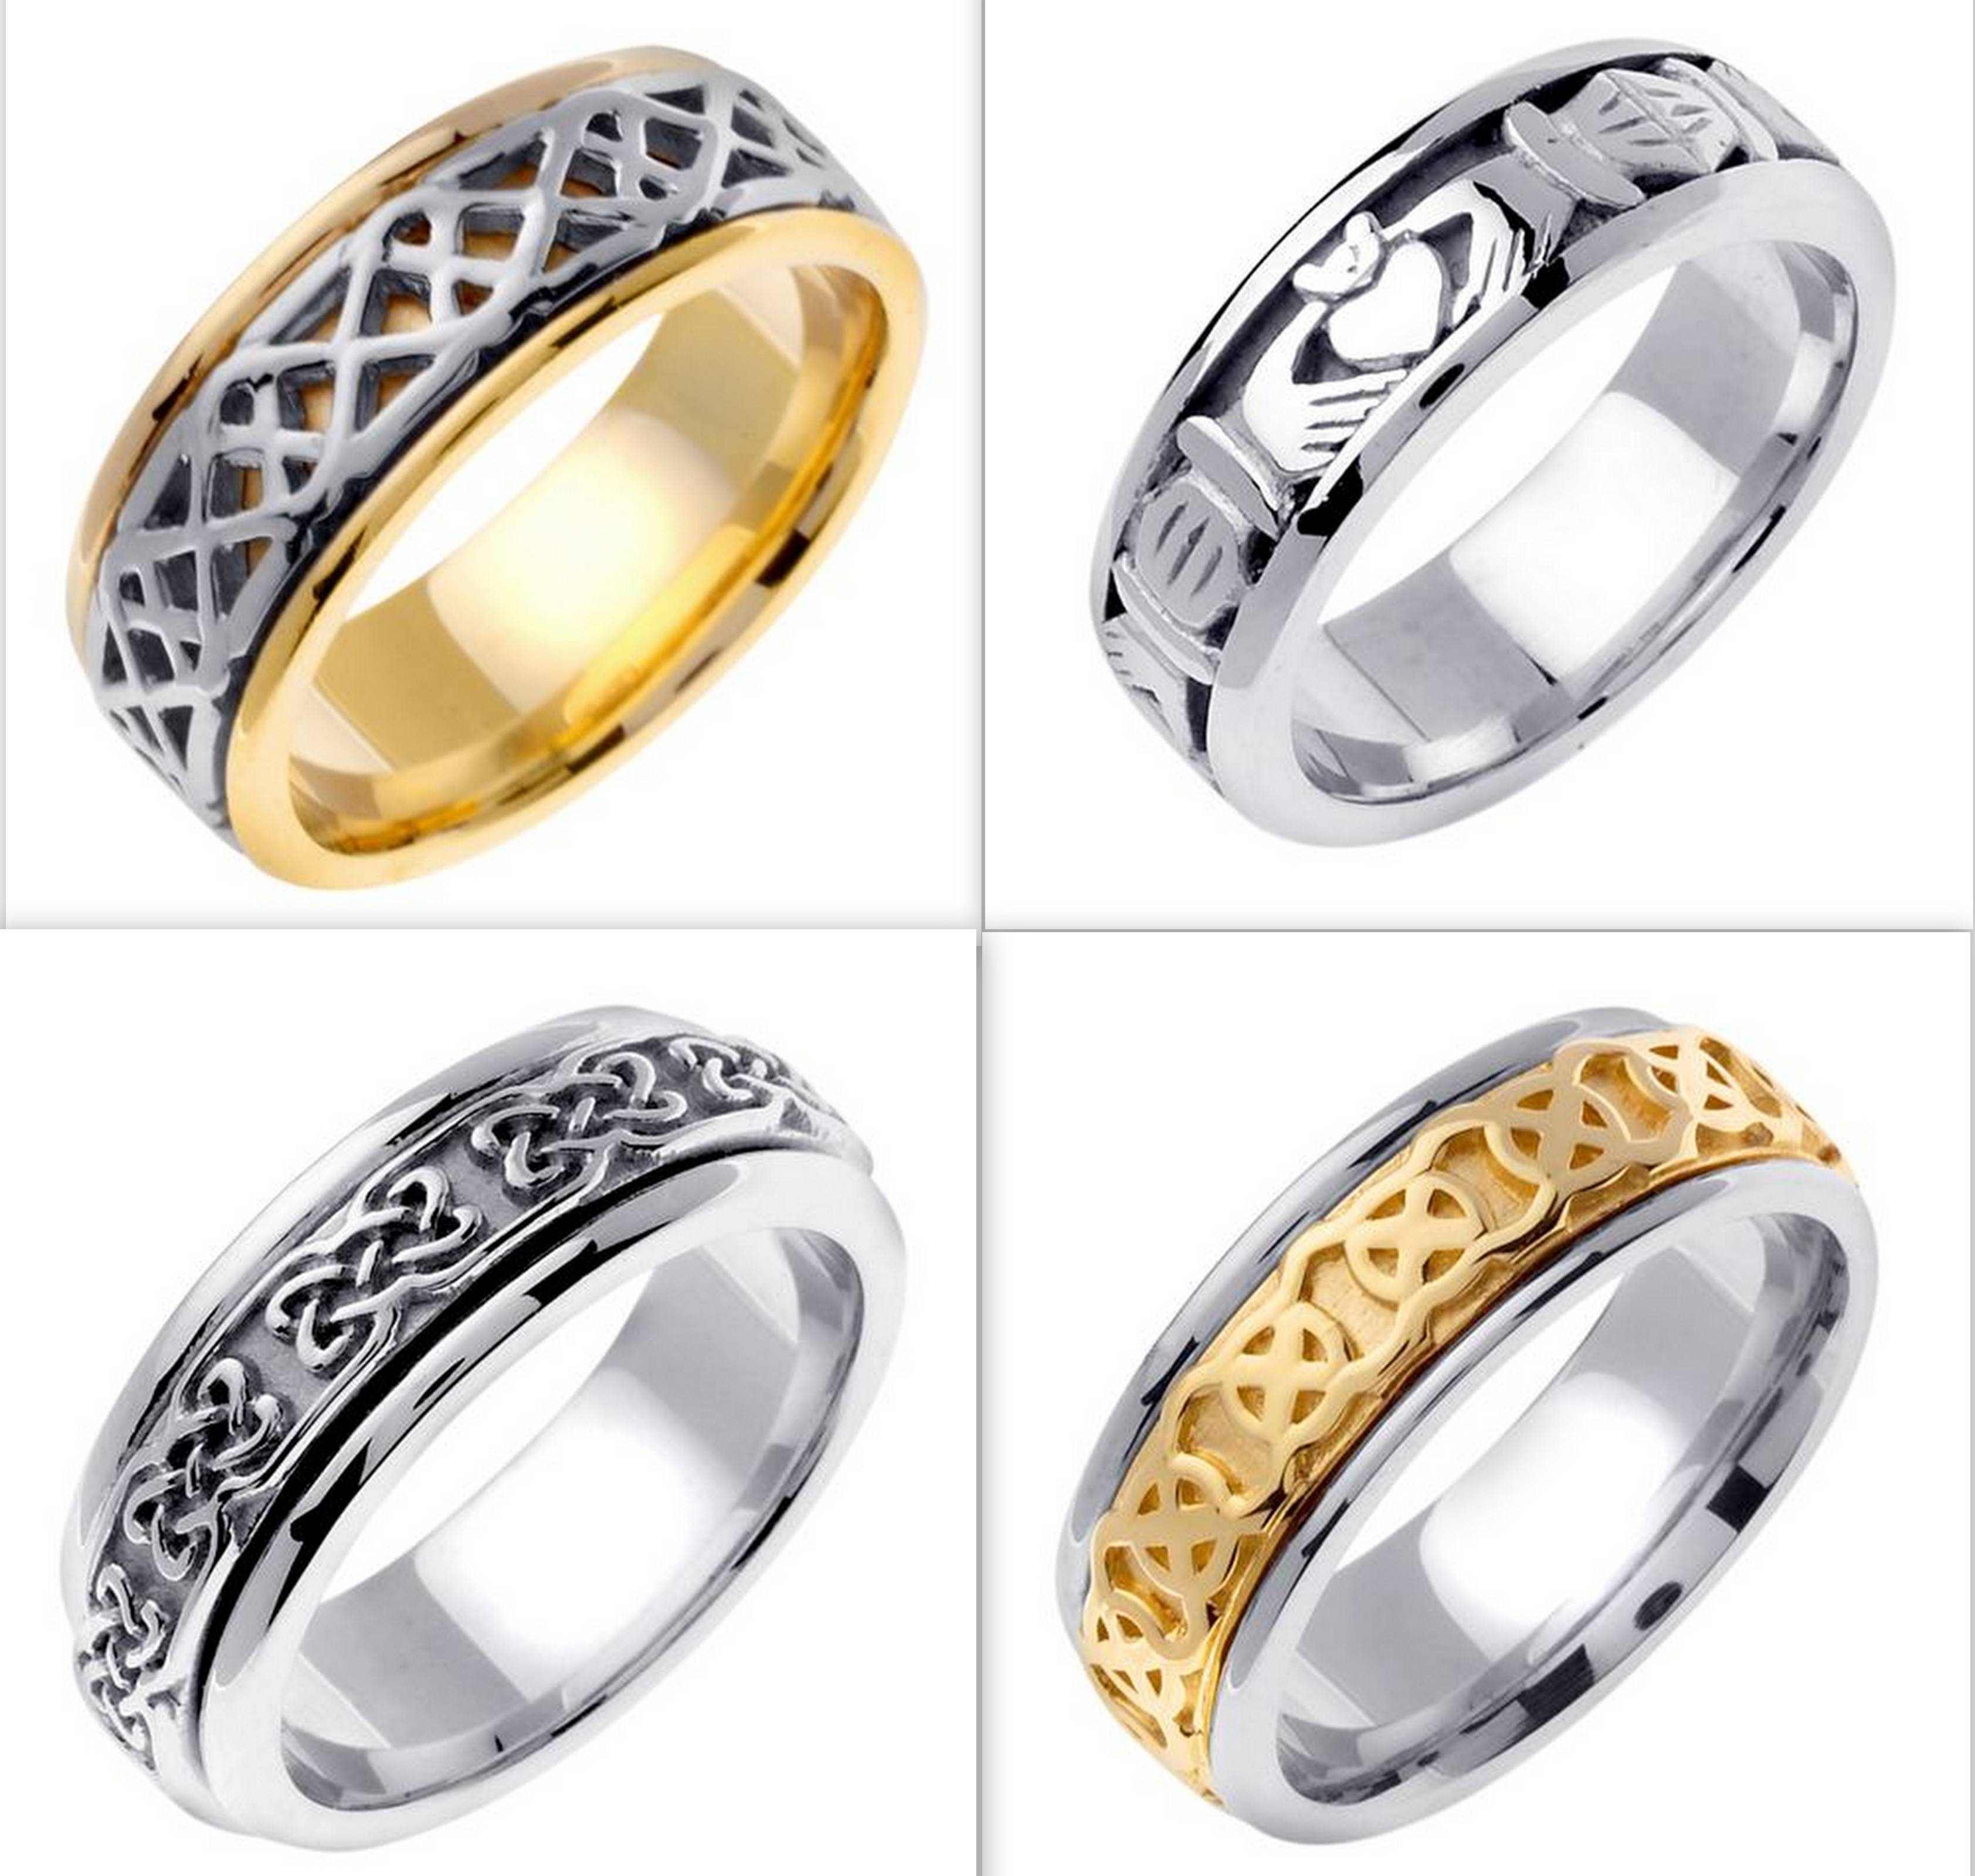 Several Things To Select Irish Wedding Rings | Wedding Ideas Within Irish Mens Wedding Bands (View 9 of 15)